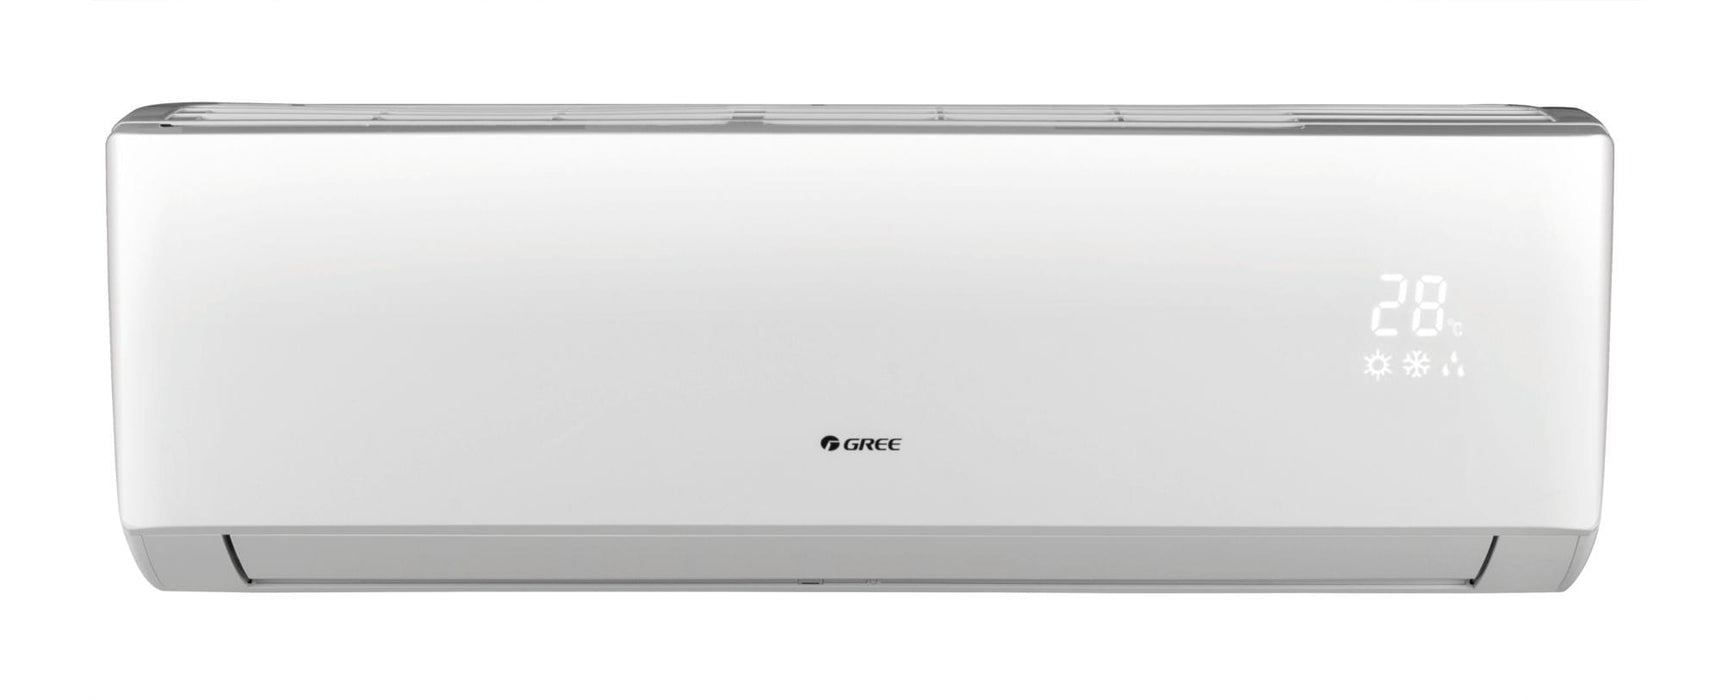 Gree 24,000 BTU 16 SEER LIVO+ Wall Mount Ductless Mini Split Indoor Unit 208-230V